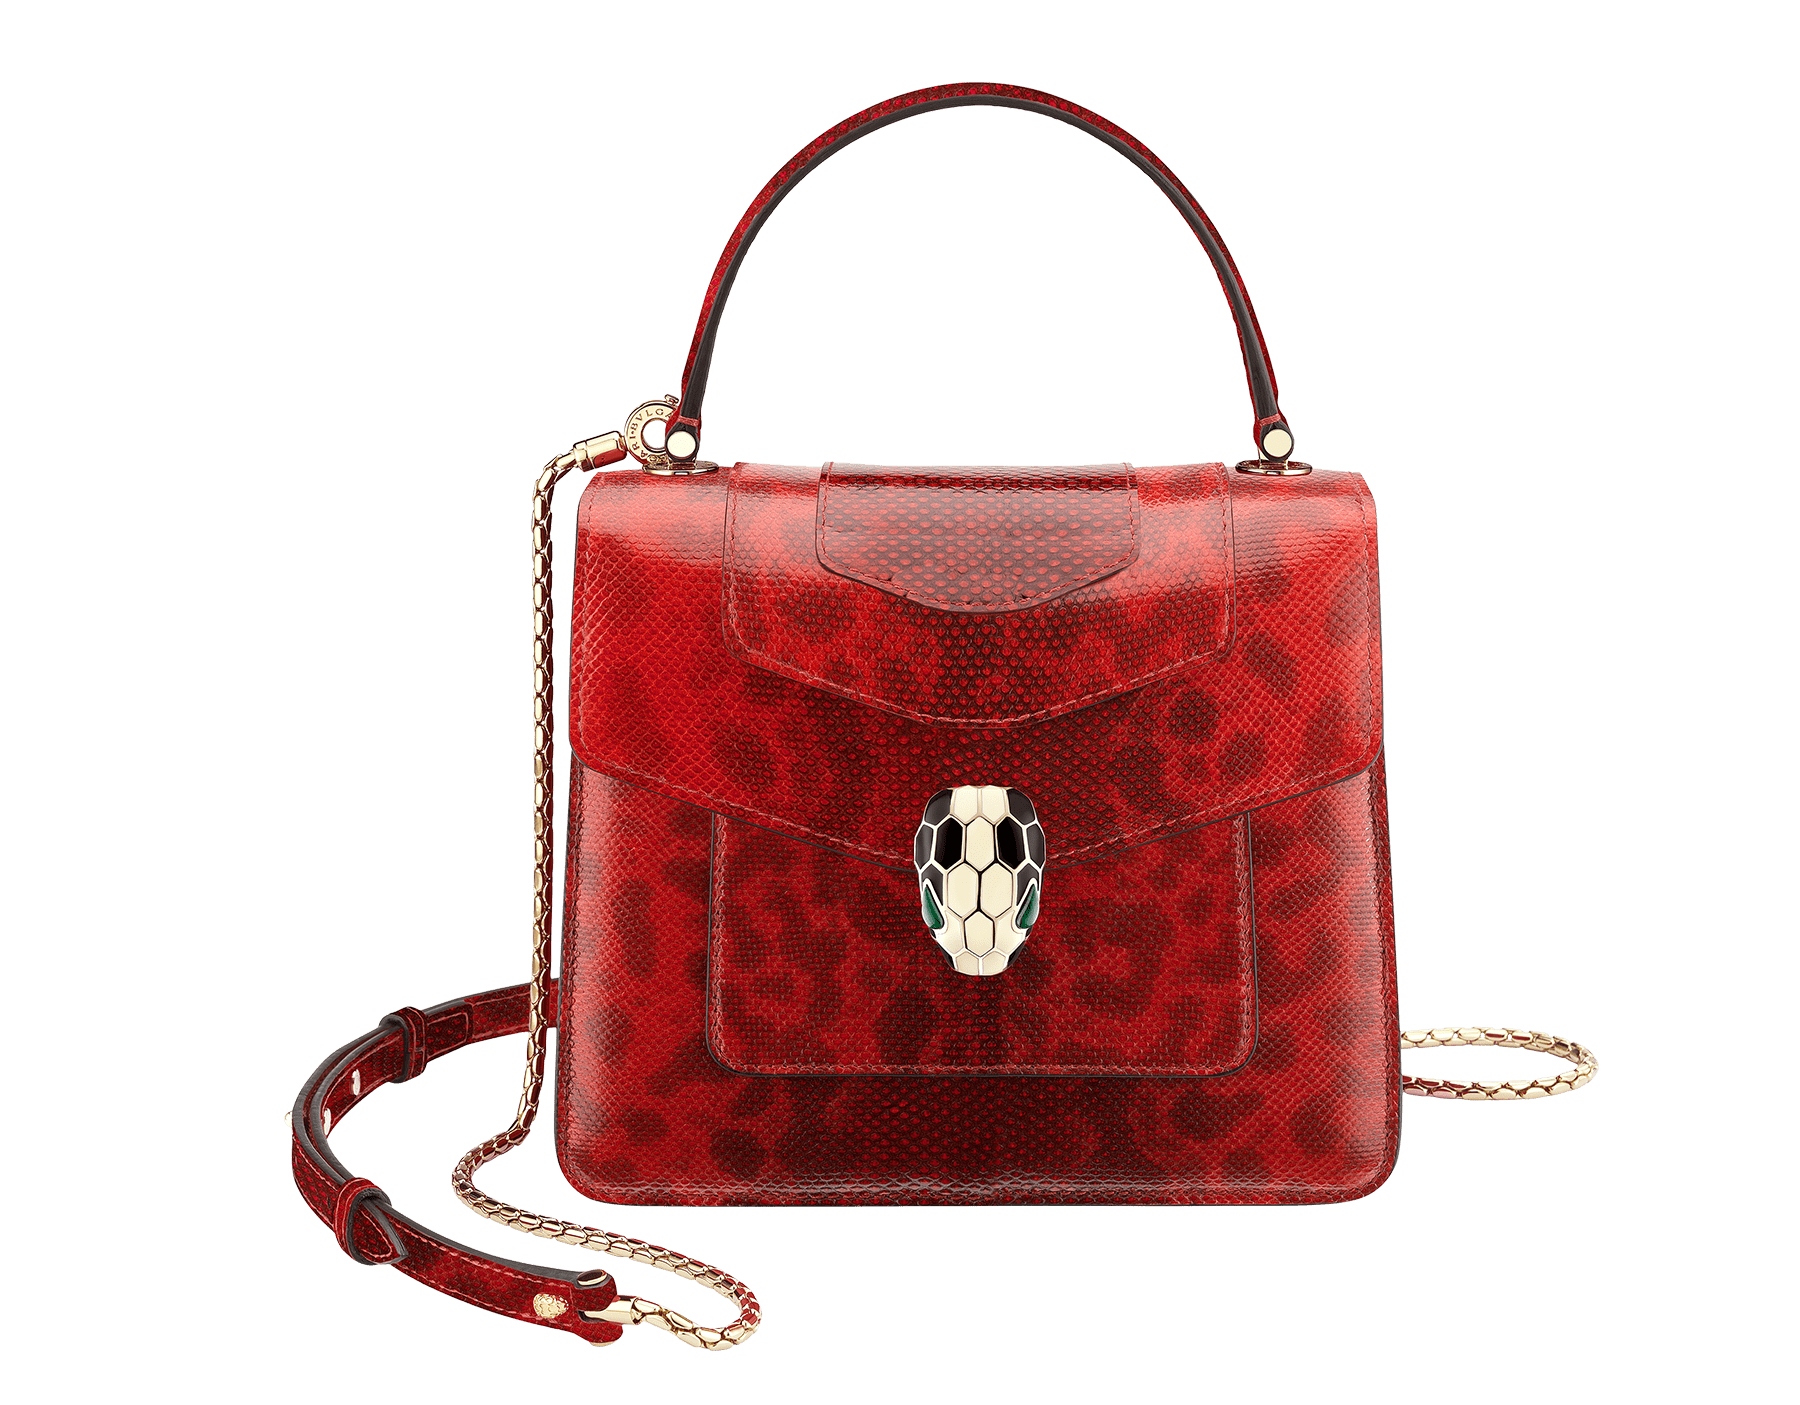 """Serpenti Forever "" crossbody bag in shiny carmine jasper karung skin. Iconic snakehead closure in light gold plated brass enriched with black and white enamel and green malachite eyes 287099 image 1"